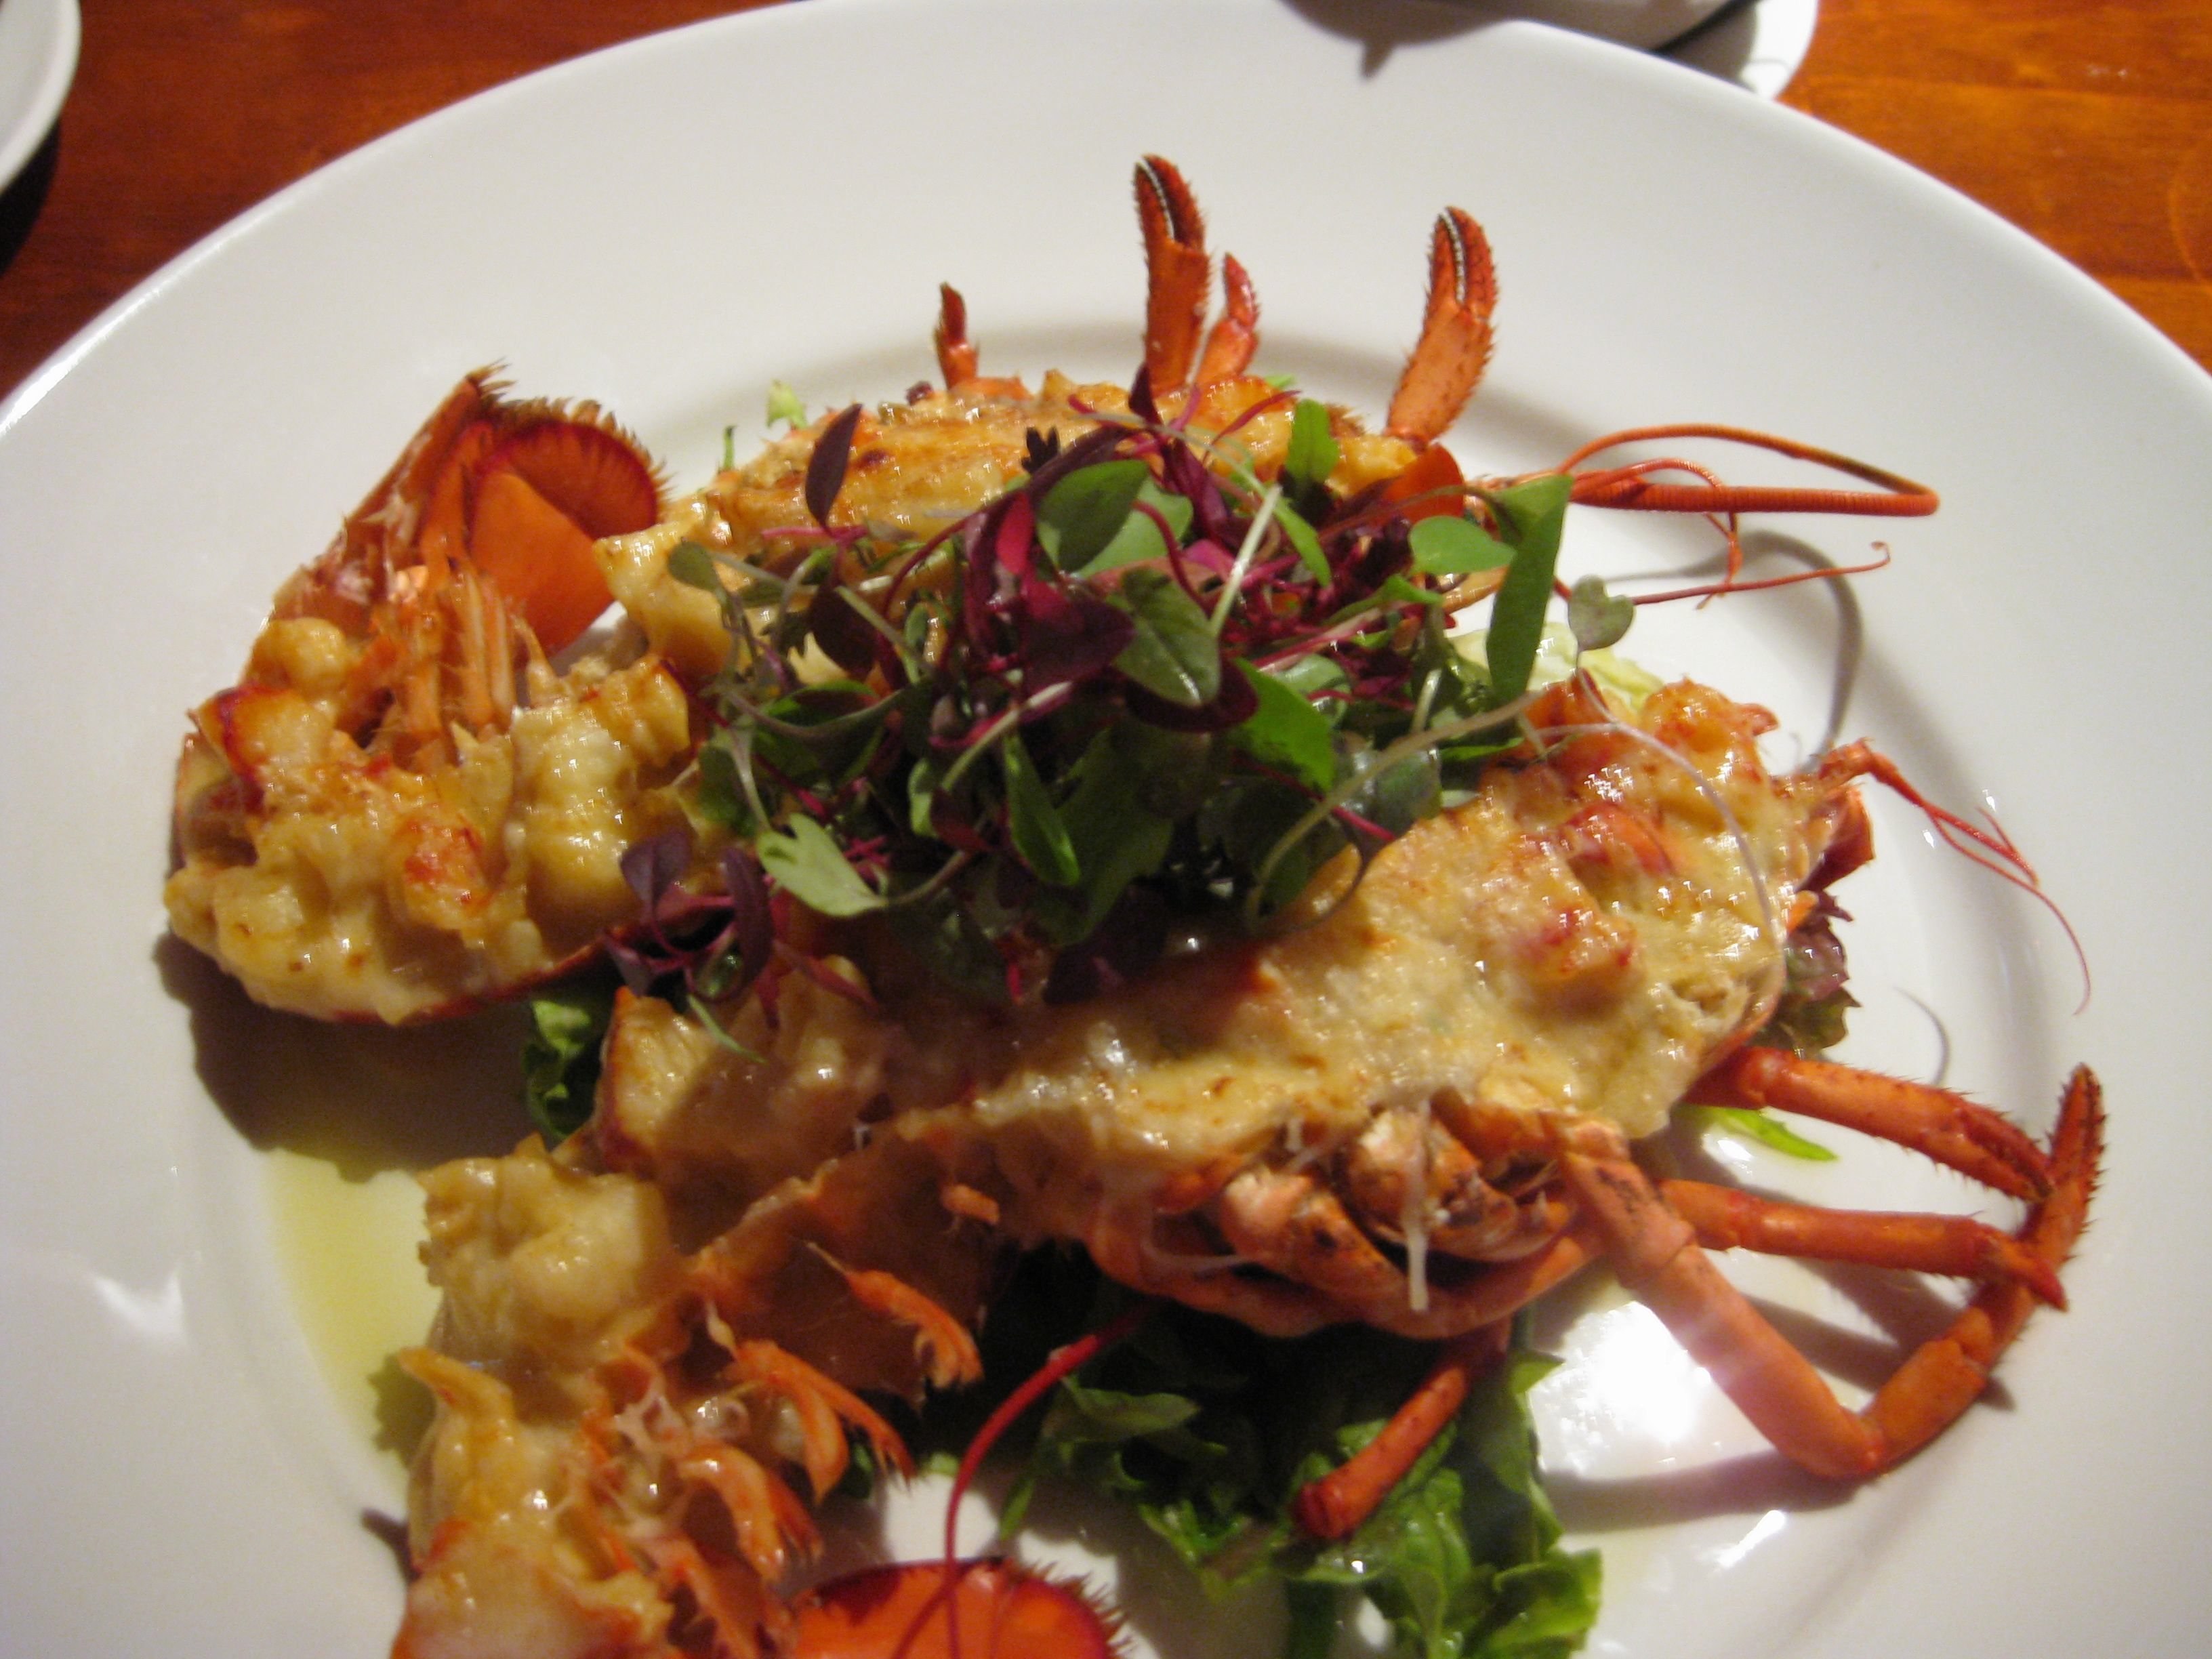 File:Lobster Thermidor.jpg - Wikipedia, the free encyclopedia